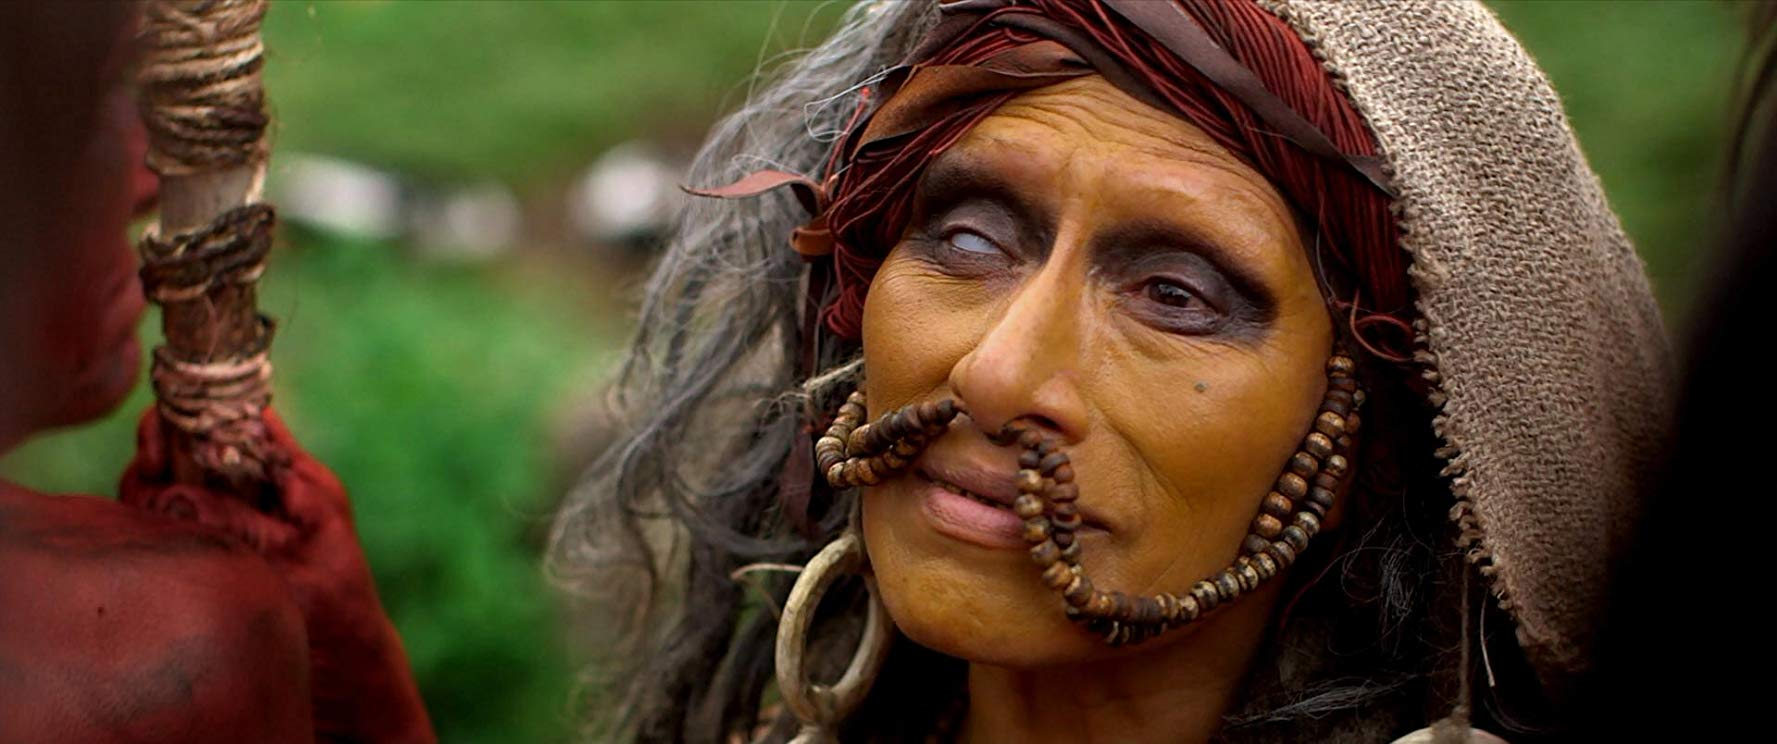 [News] Scream Factory Presents THE GREEN INFERNO